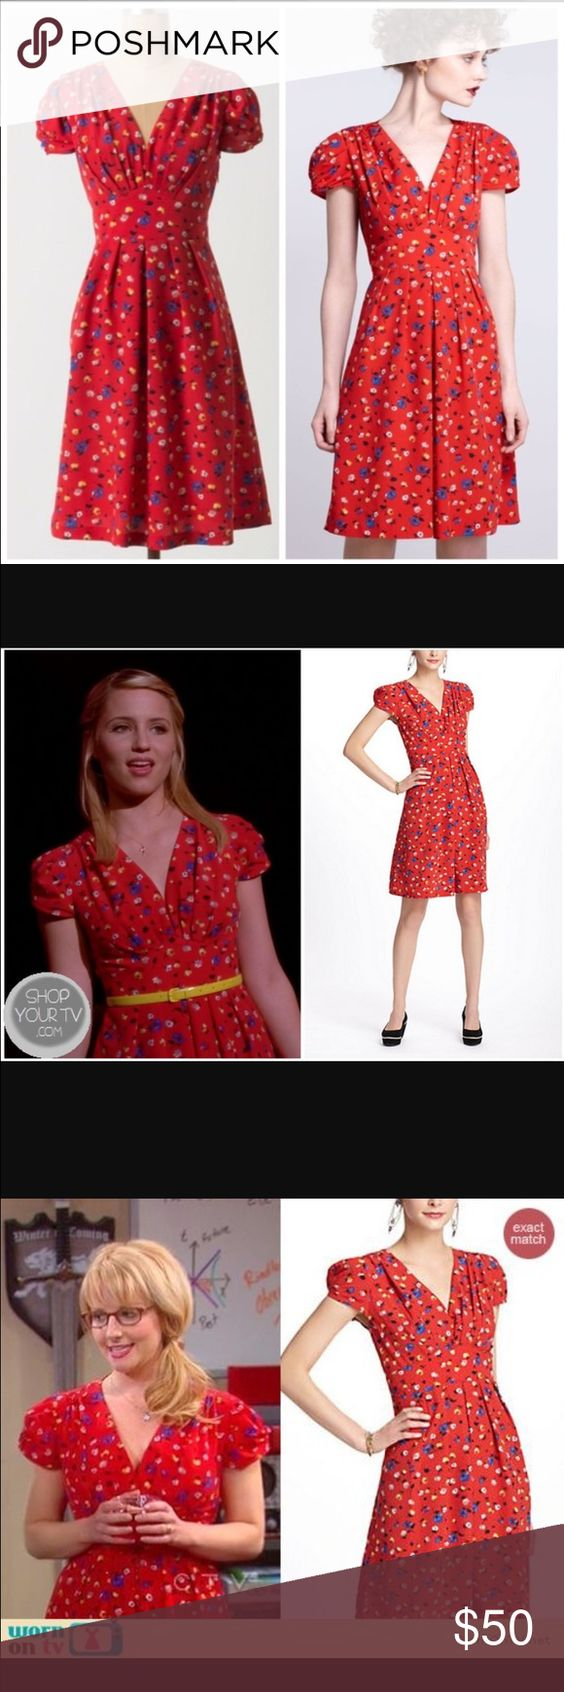 """Basque Floral Dress from Hi There by Karen Walker Excellent used condition, size 2 but runs slightly small. Stunning. Featured on tv several times. Very Modcloth or Emily and Finn. Laid flat, bust is 16"""", waist is 12.5"""". Anthropologie Dresses"""